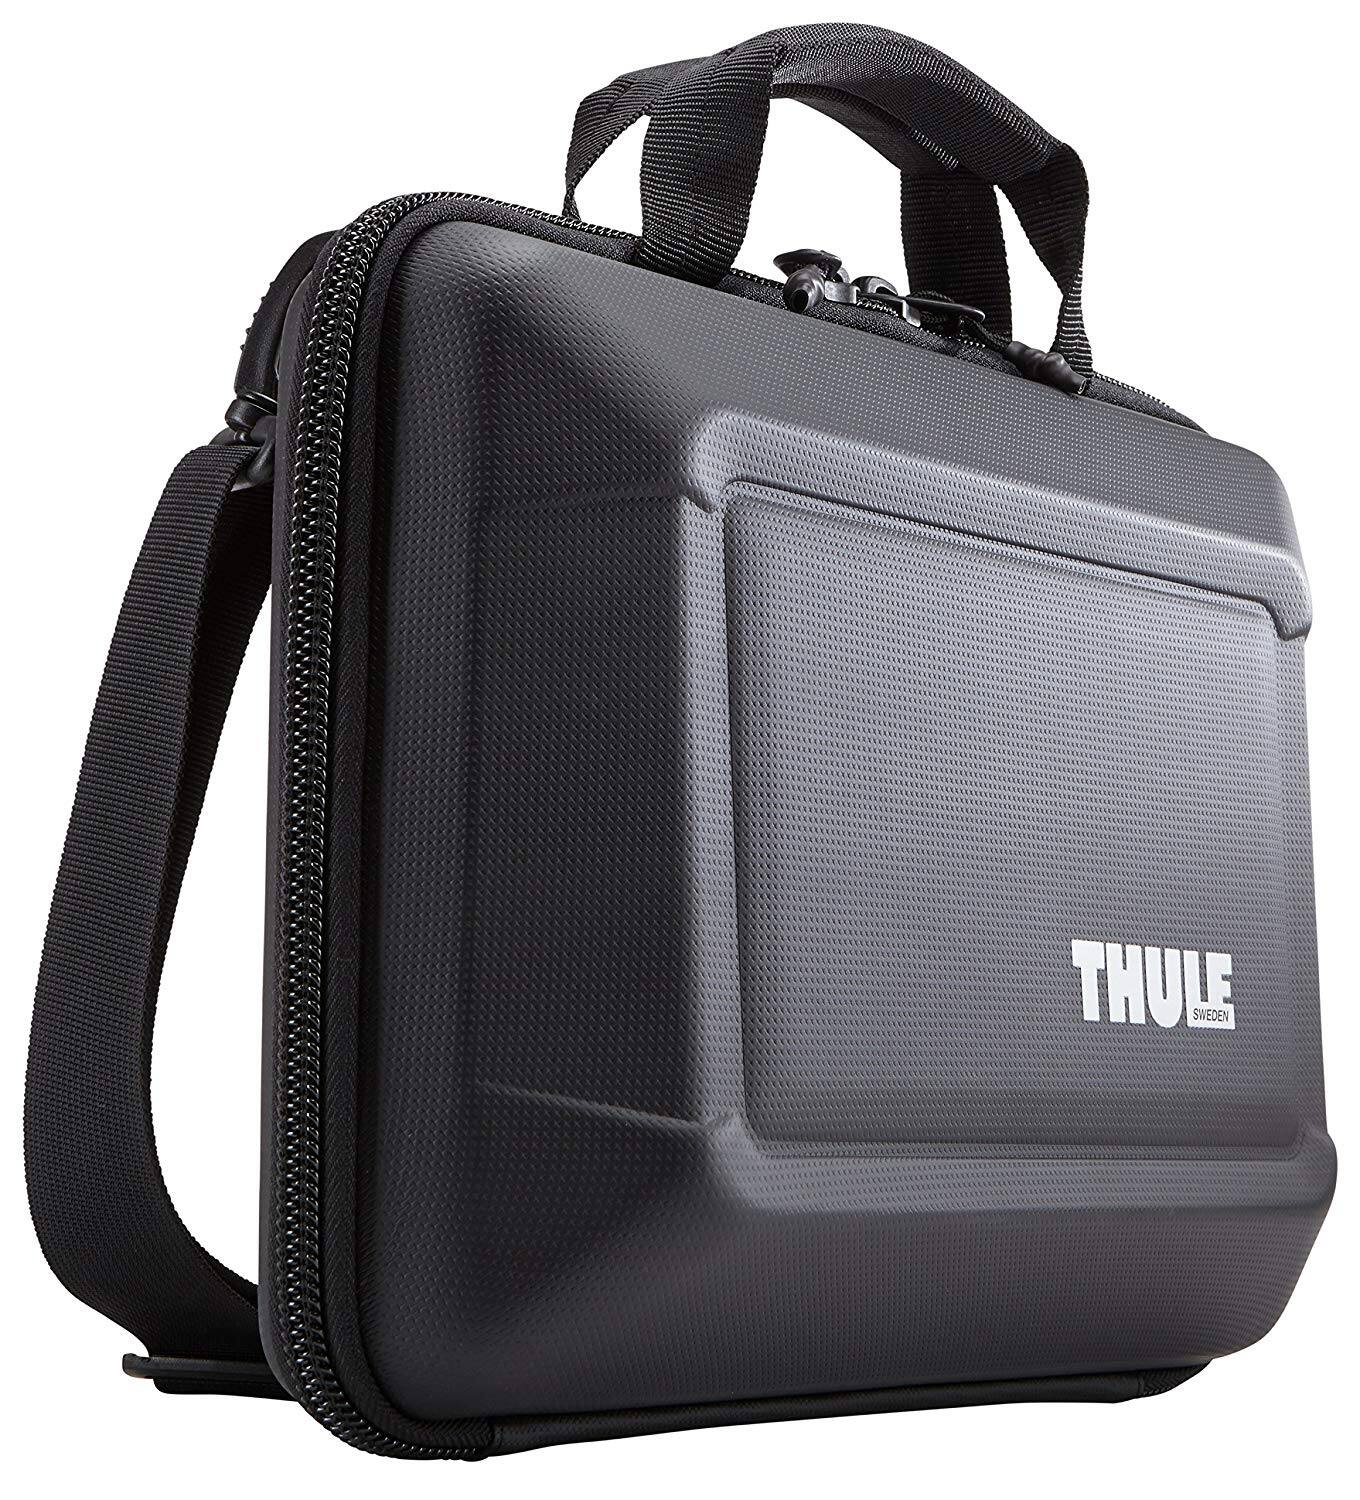 f82a5d36473 Thule Accent 23L Backpack $49 | Thule Versant 70L Hiking Backpack $99 and  More + Free Shipping